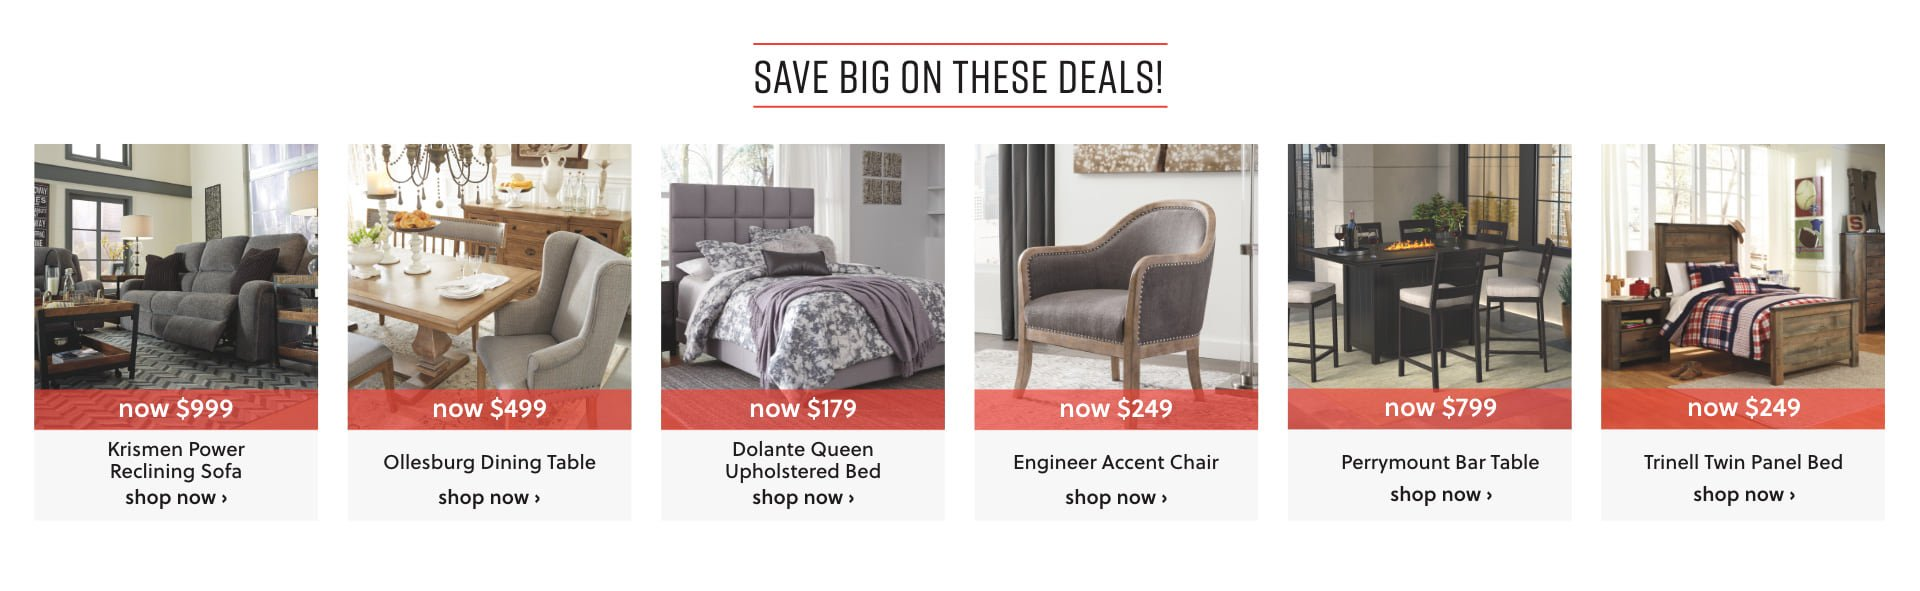 Save big on Sofas, Beds, Dining Tables, and Chairs